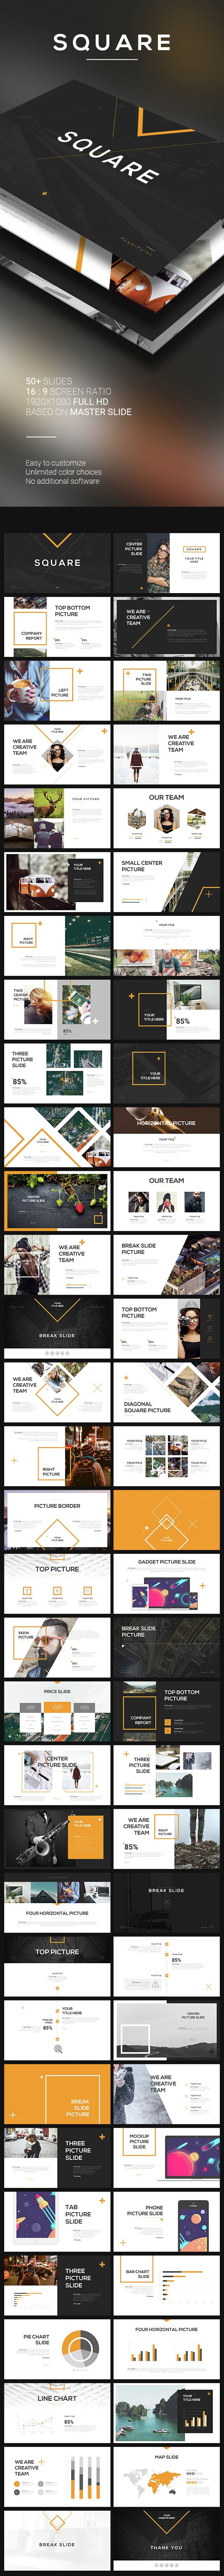 Square PowerPoint Template. Download here: http://graphicriver.net/item/square-powerpoint-template/15376101?ref=ksioks